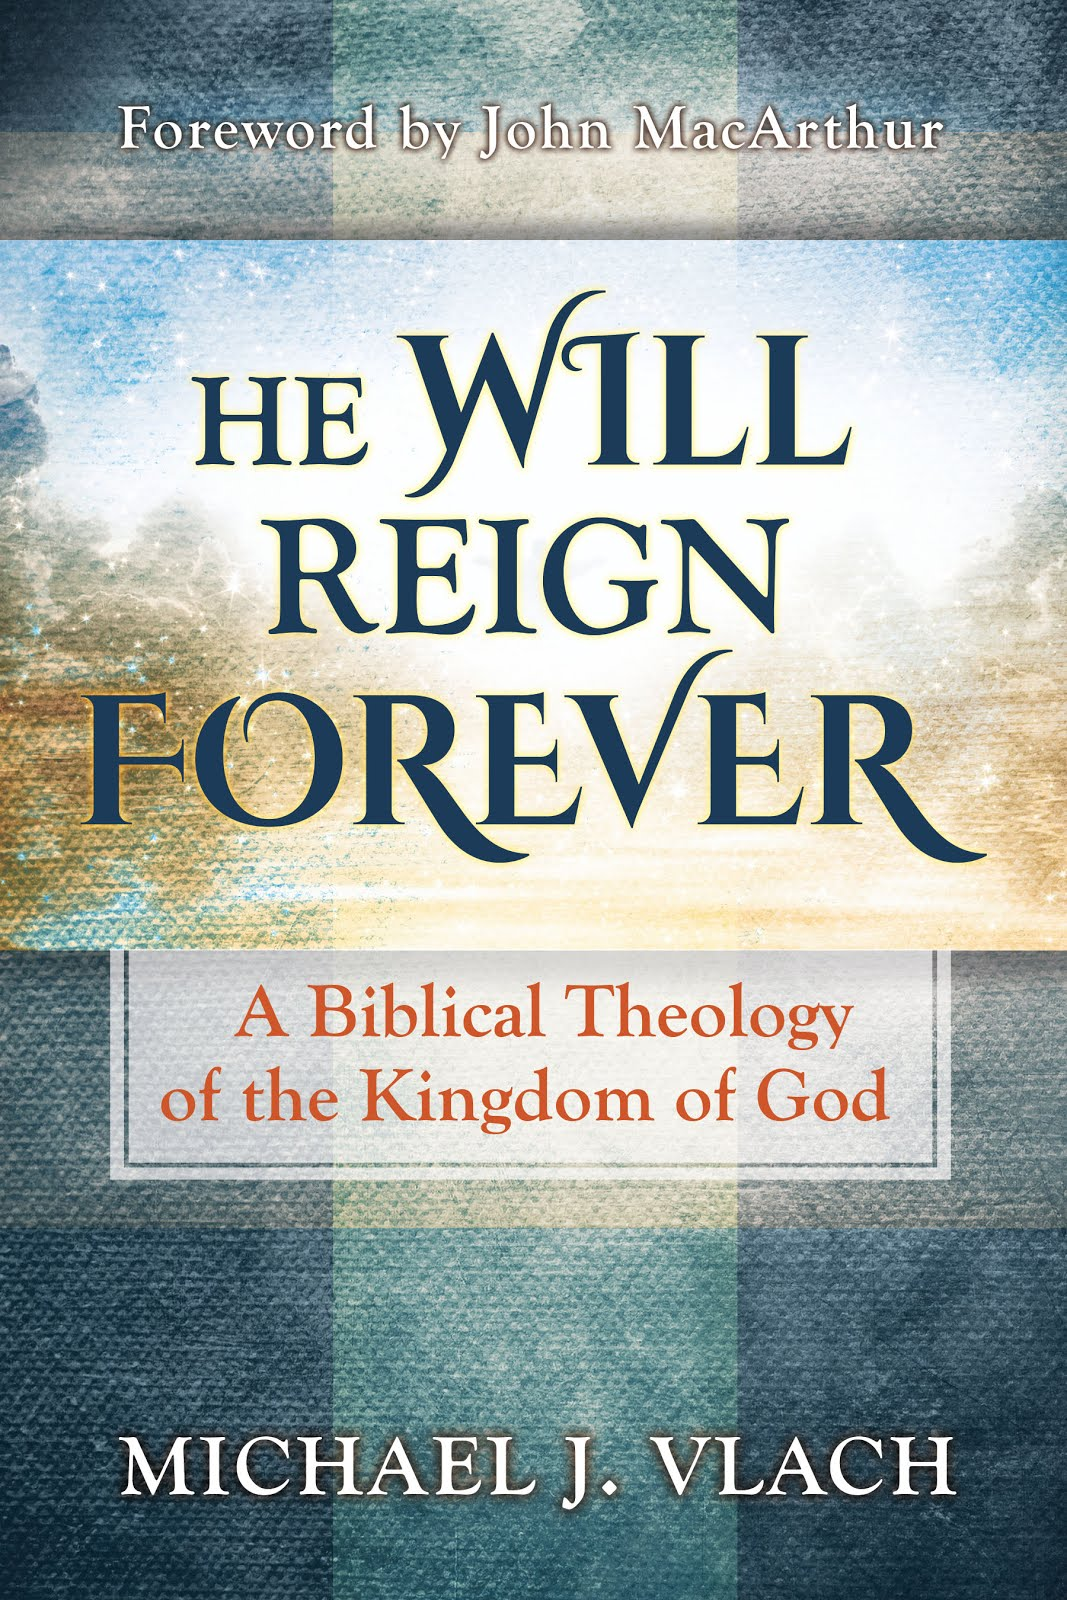 Biblical Theology of Kingdom